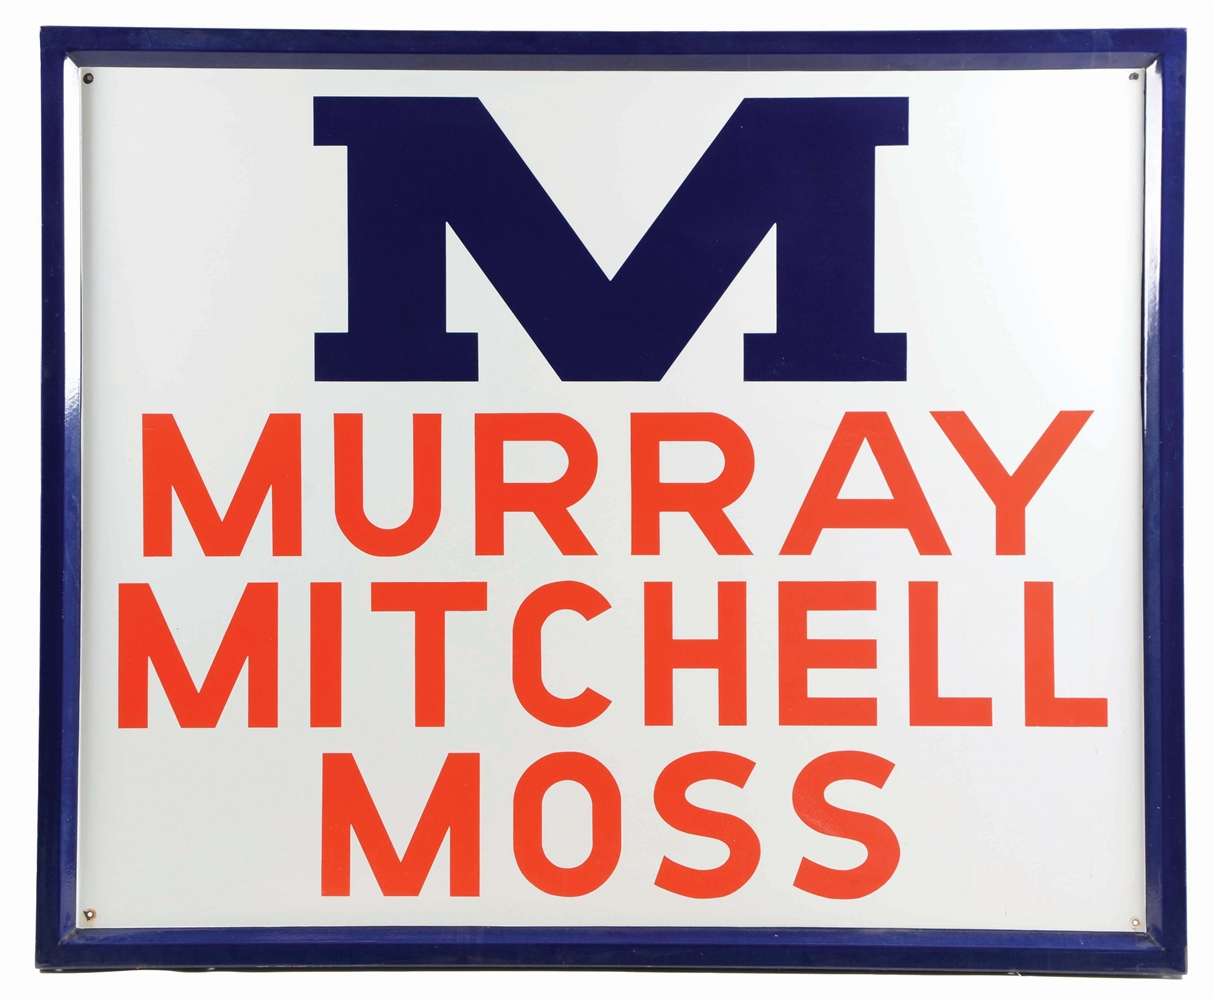 OUTSTANDING MURRAY MITCHELL MOSS COTTON MACHINERY PORCELAIN SIGN W/ SELF FRAMED EDGE.